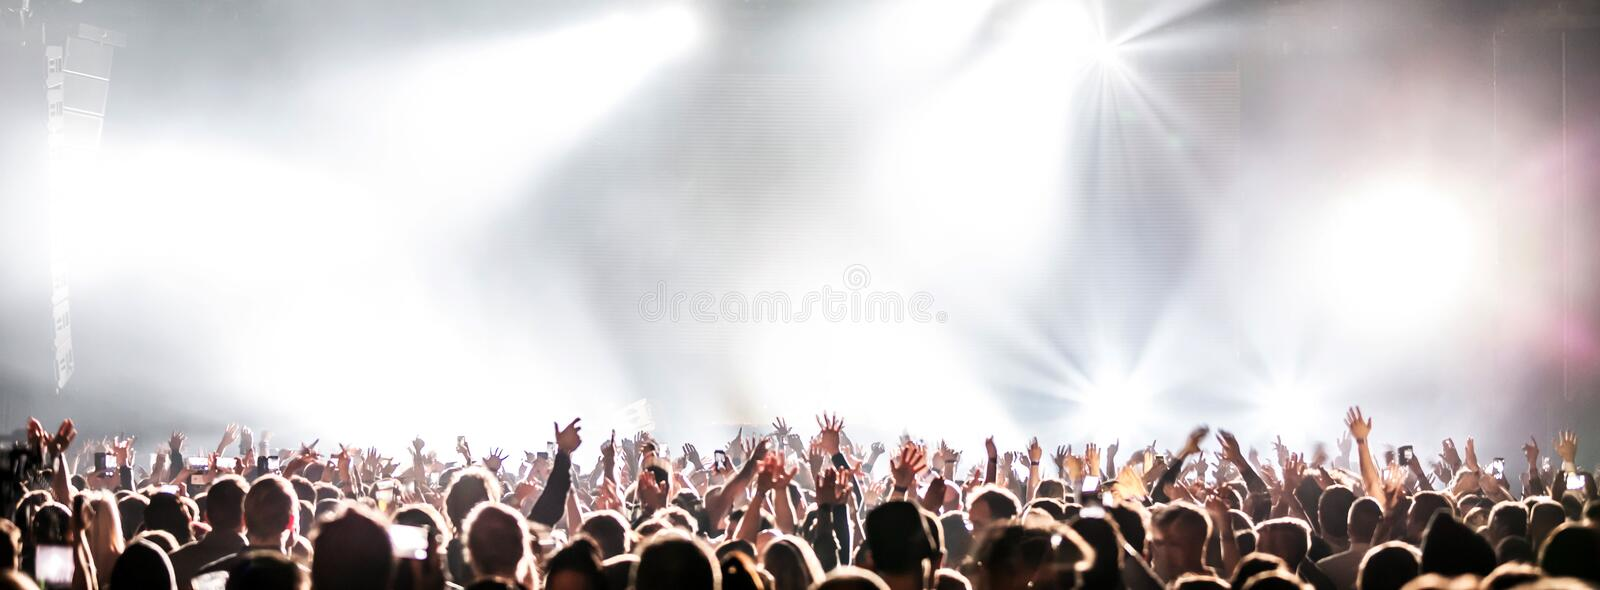 Live concert with raising hands. Silhouettes of concert crowd in front of bright stage lights stock photo